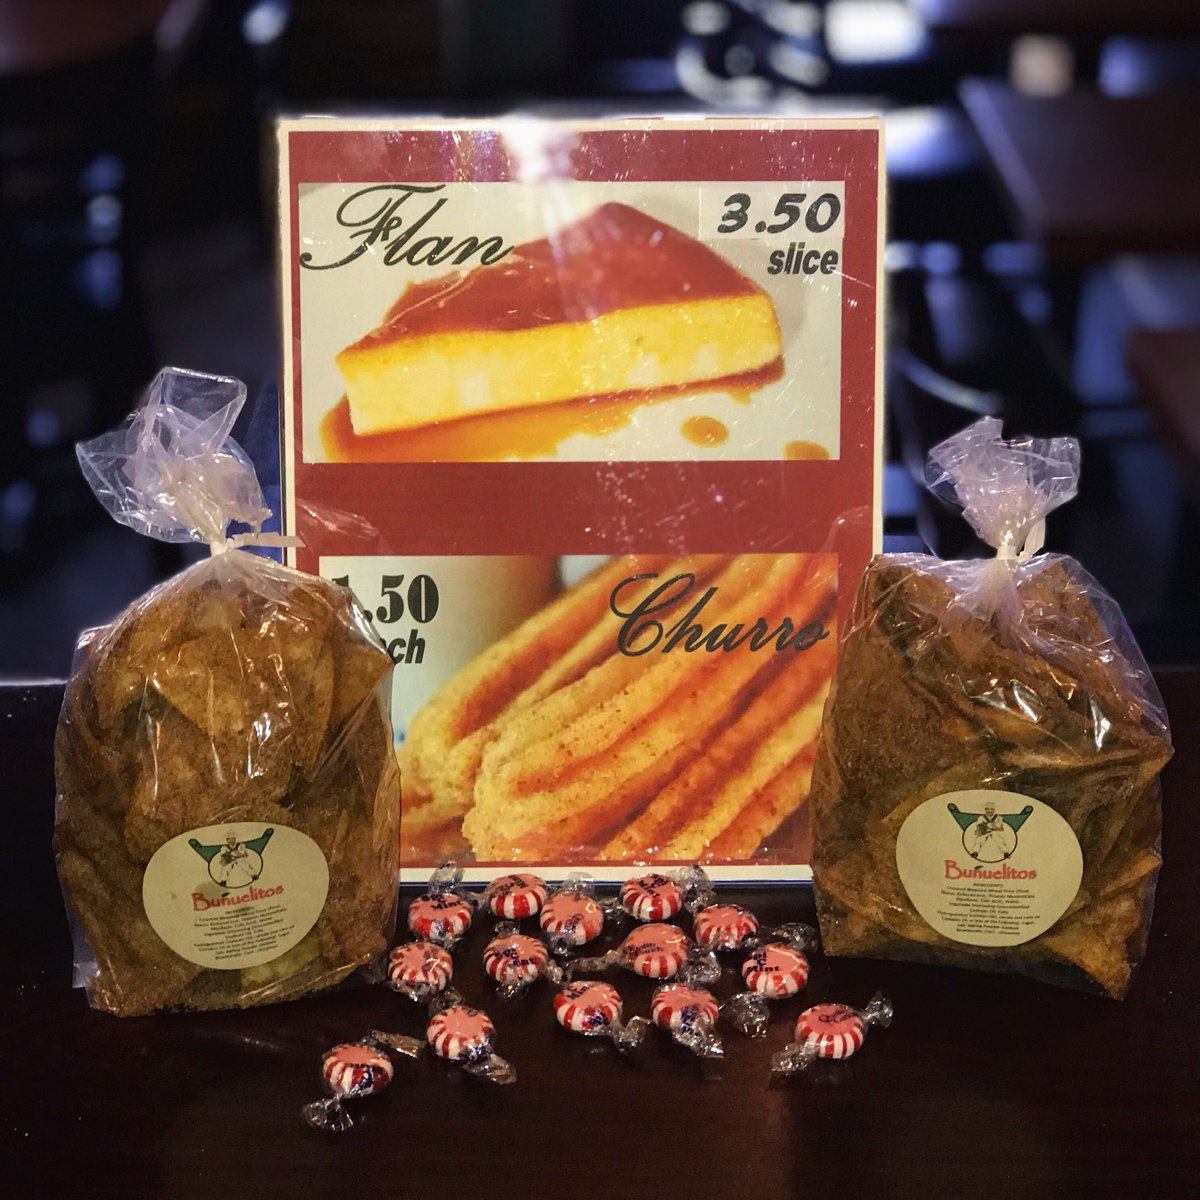 choose from Cinnamon Chips, Flan or Churro